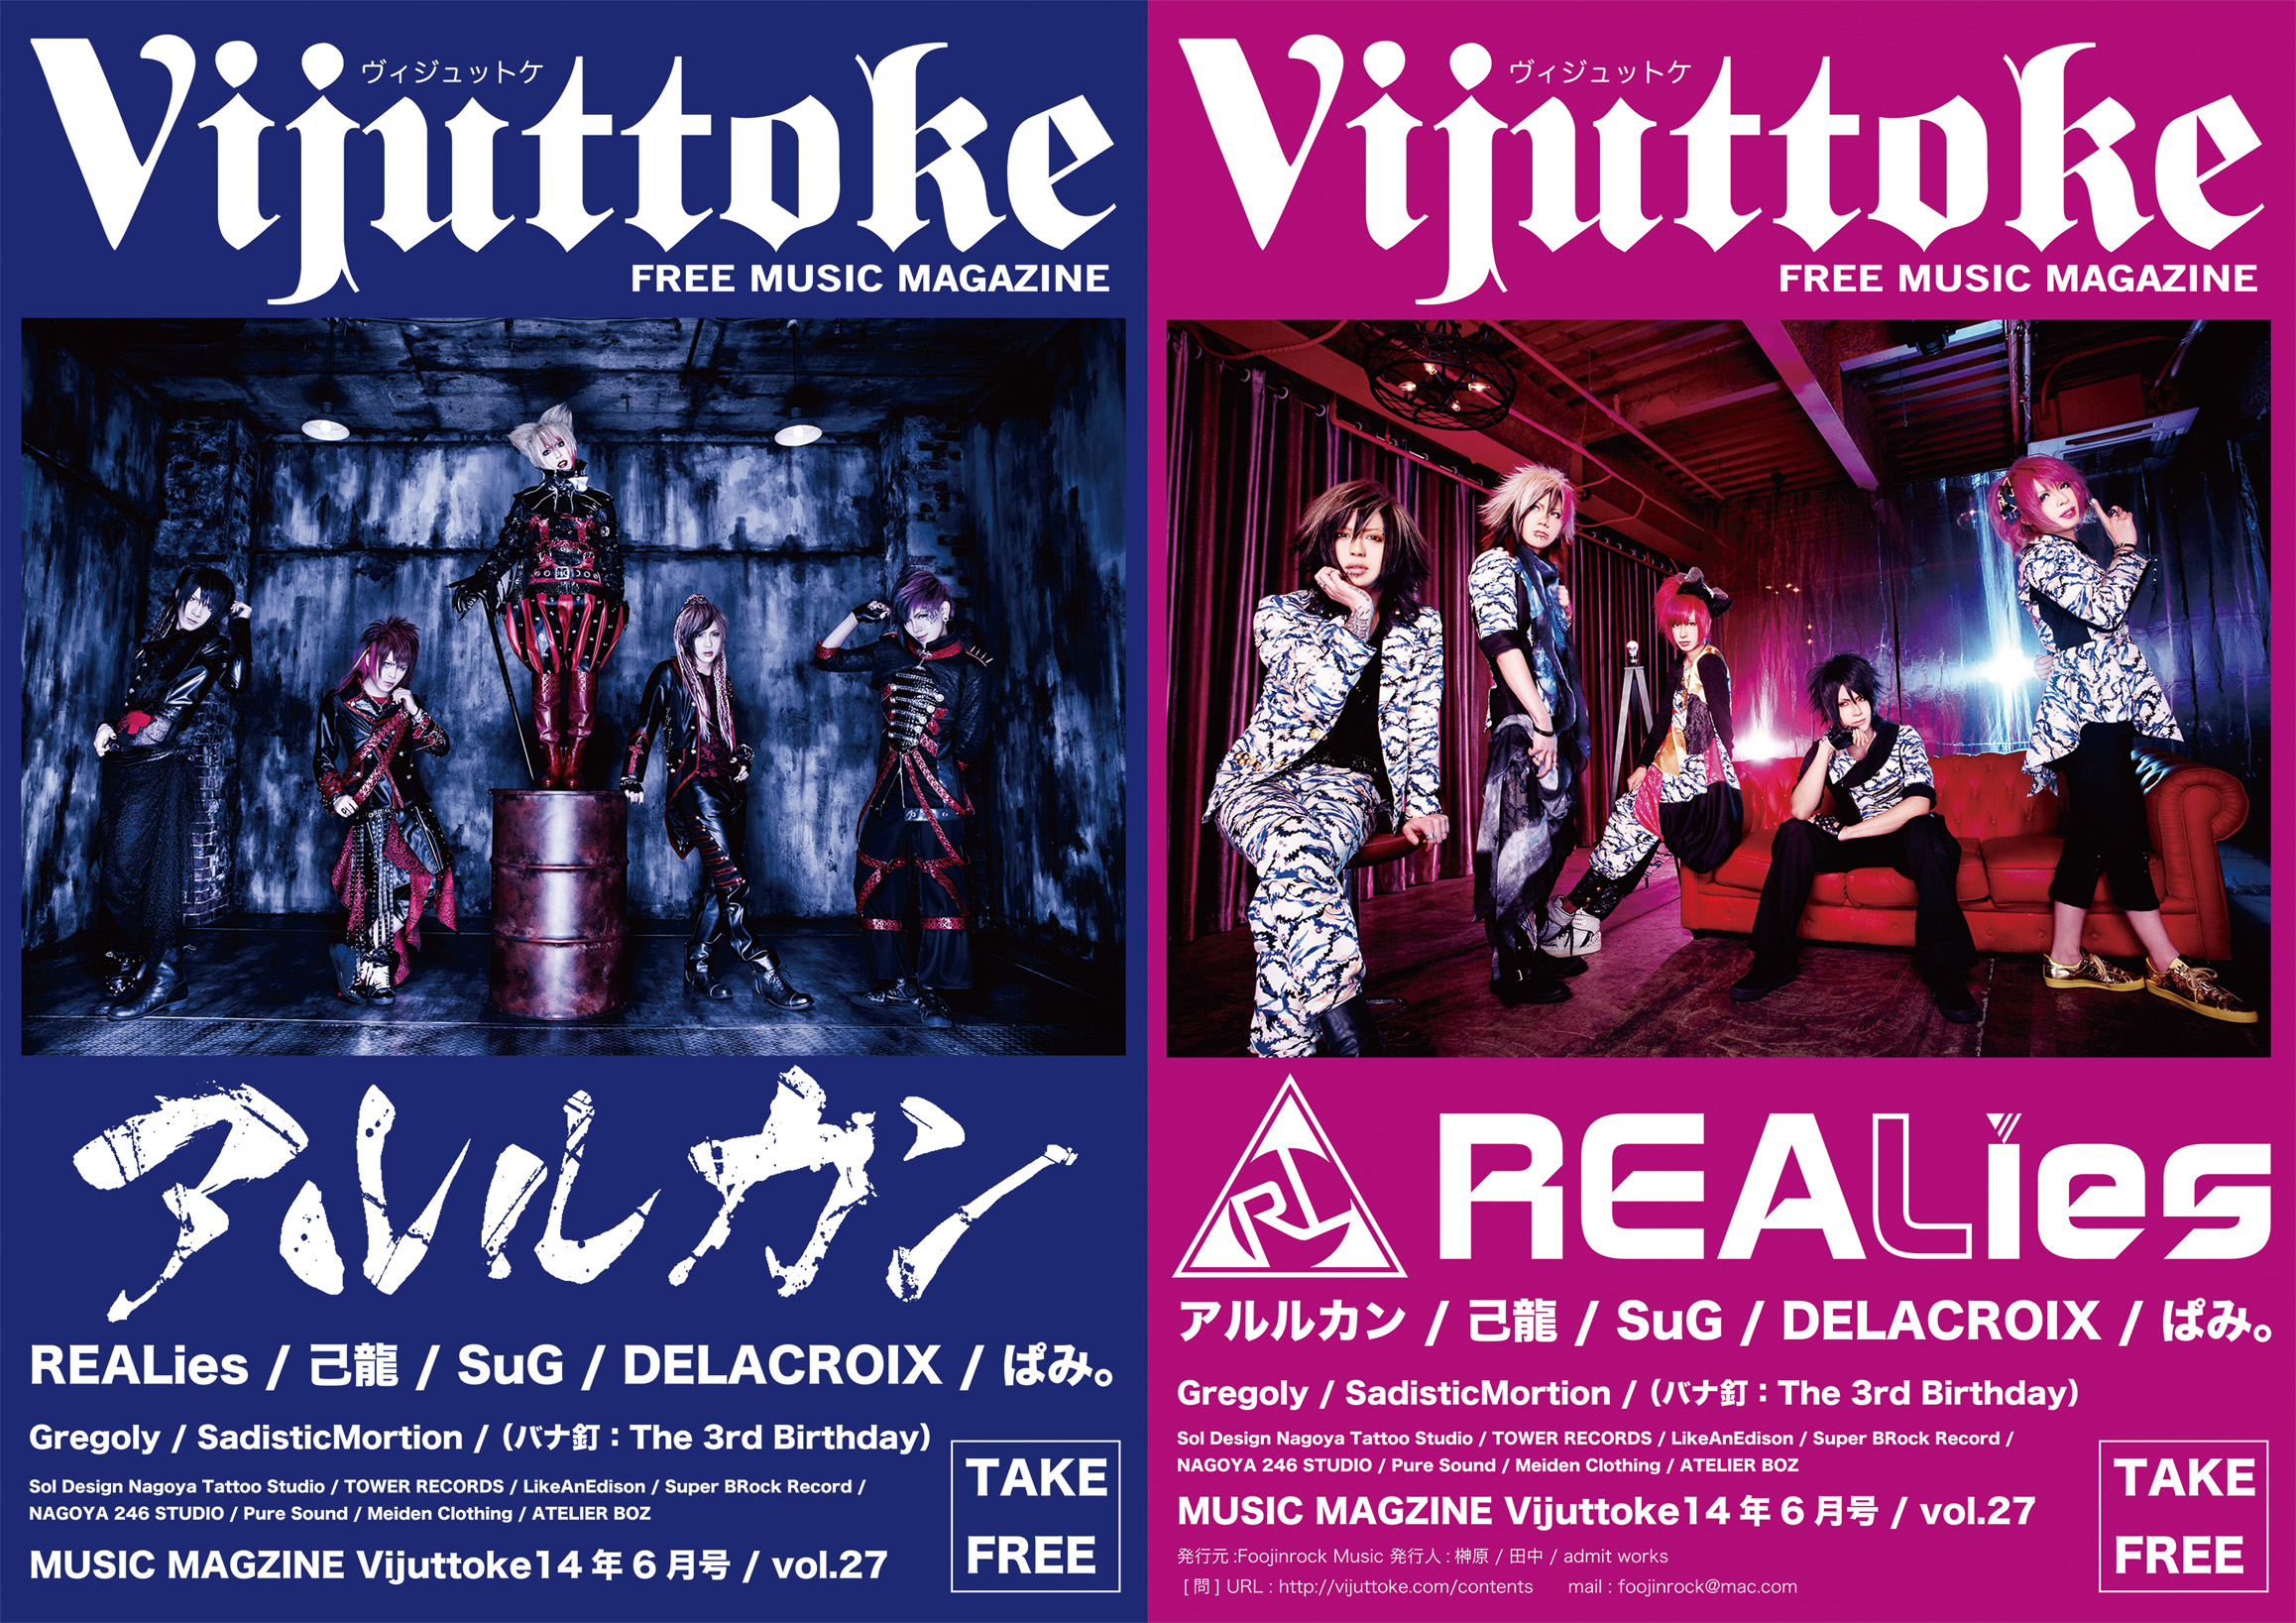 REALies and ARLEQUIN covers